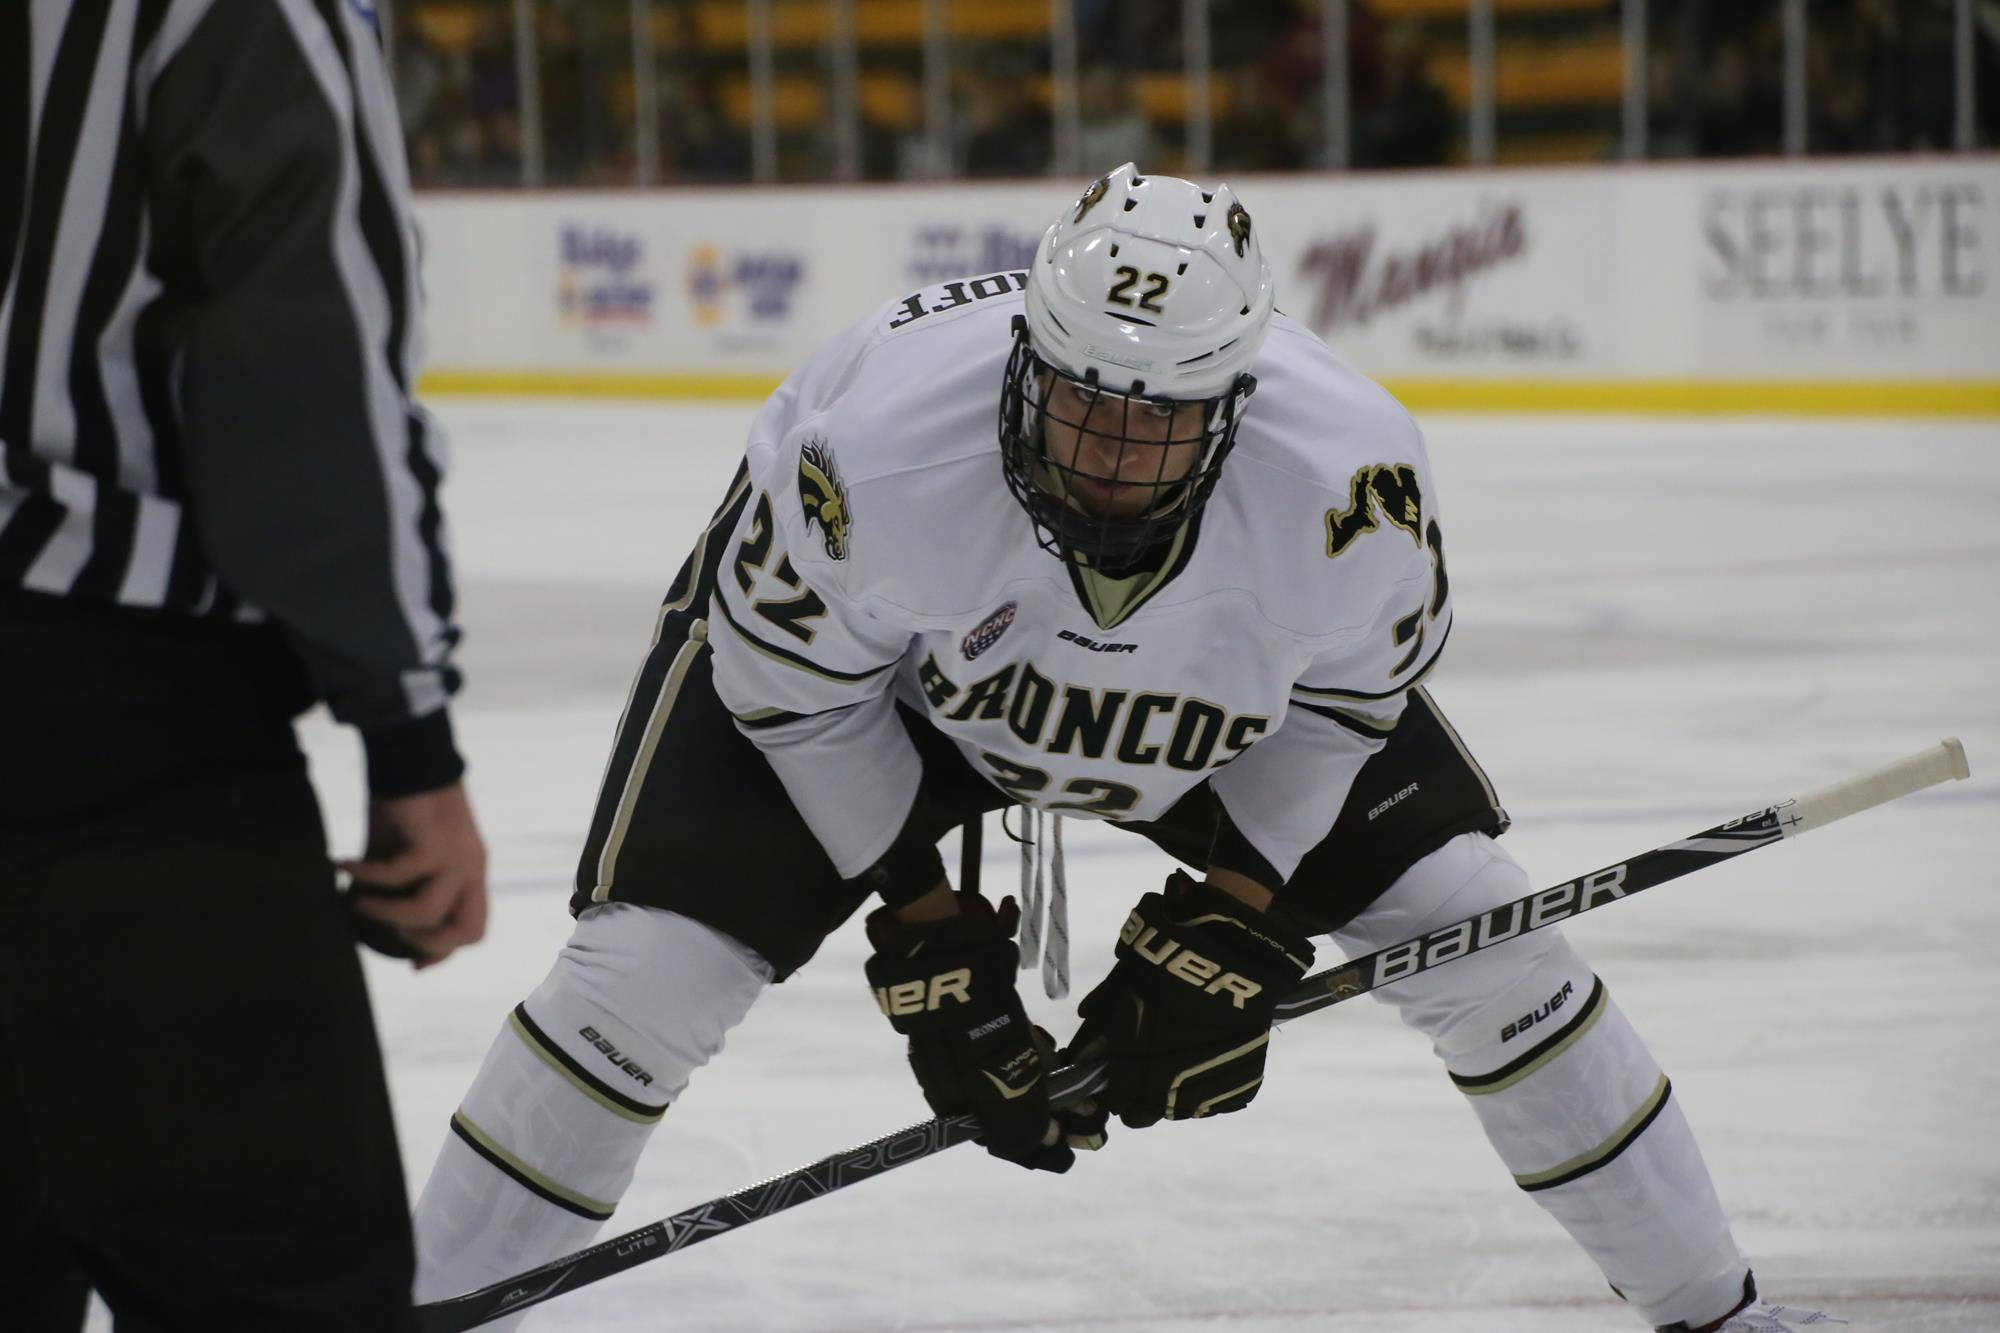 Hockey Stumbles Against No. 18 Colgate - Western Michigan University ... 7ec38aa428a